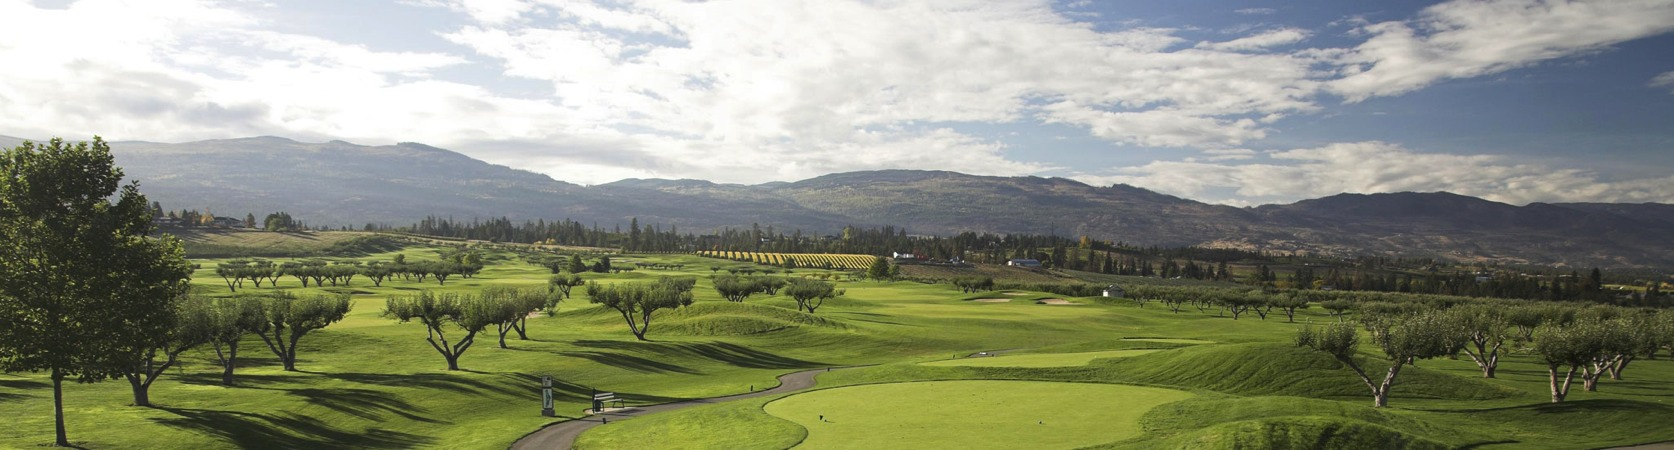 Harvest Golf Course panoramic